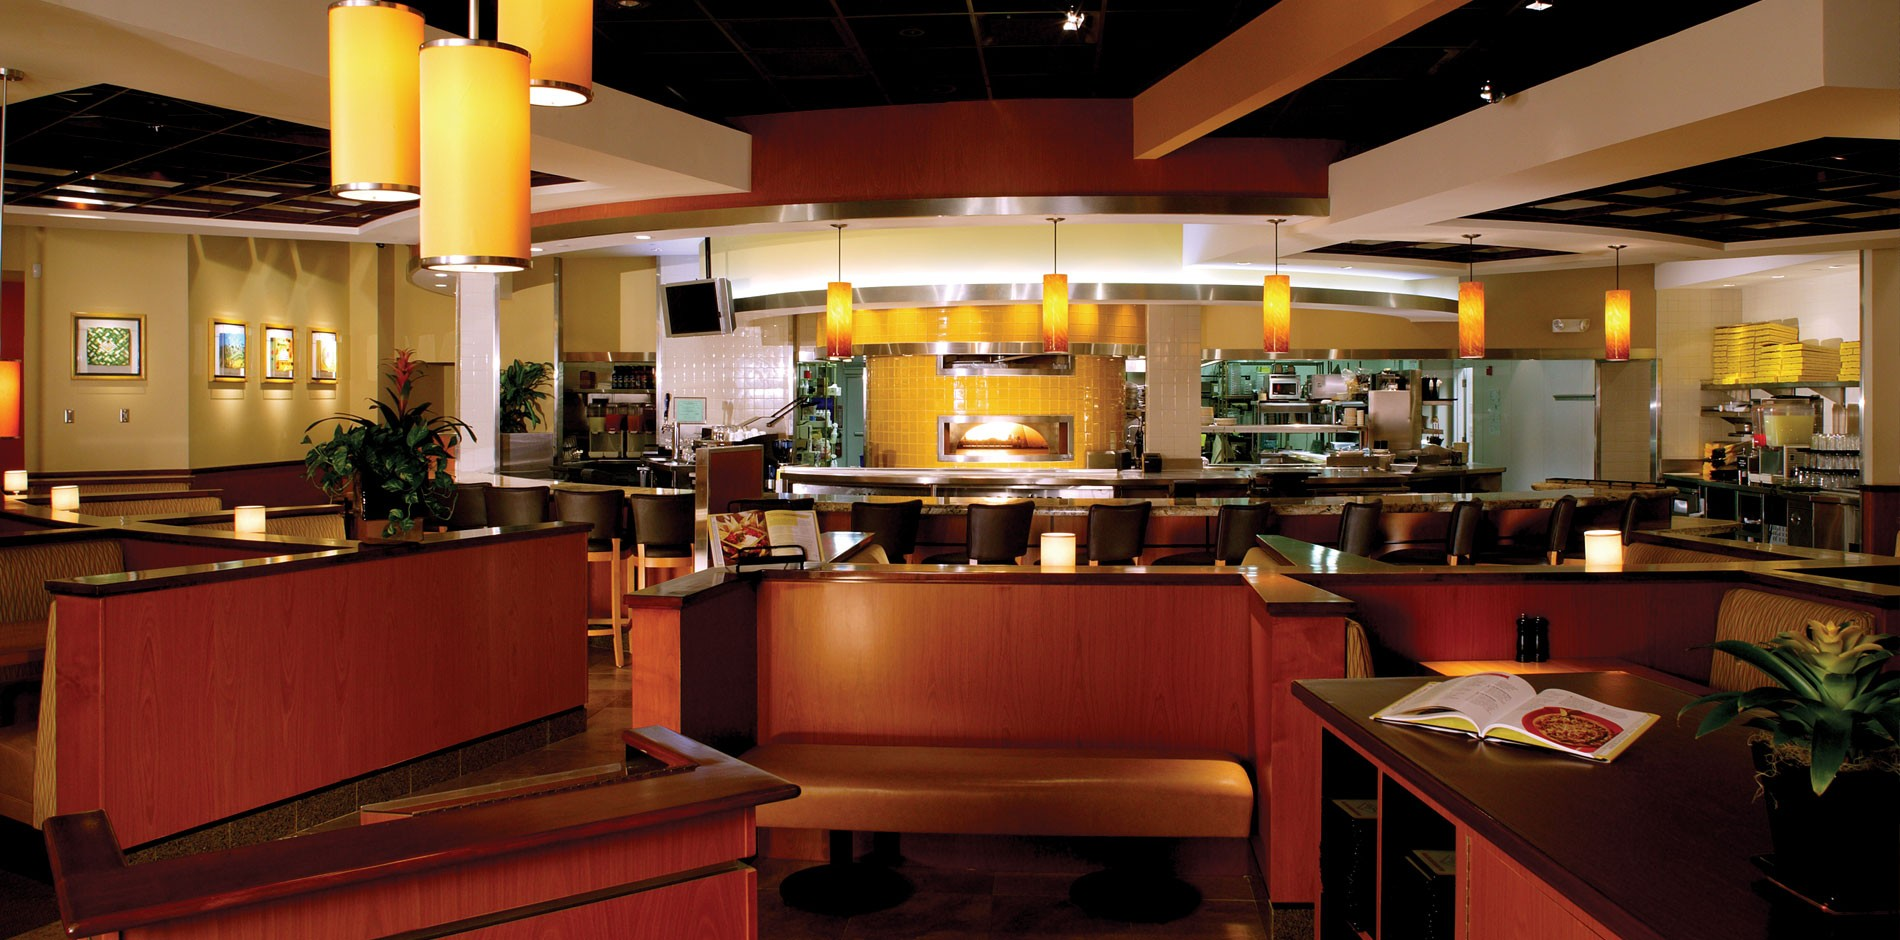 Ruth's Chris Steak House is an upscale fine dine in restaurants chain that offers luxury steak menu in over locations across United States, Canada, Mexico, Puerto Rico, Aruba, Hong Kong, Japan, Taiwan, Singapore, China, Indonesia, and United Arab Emirates.